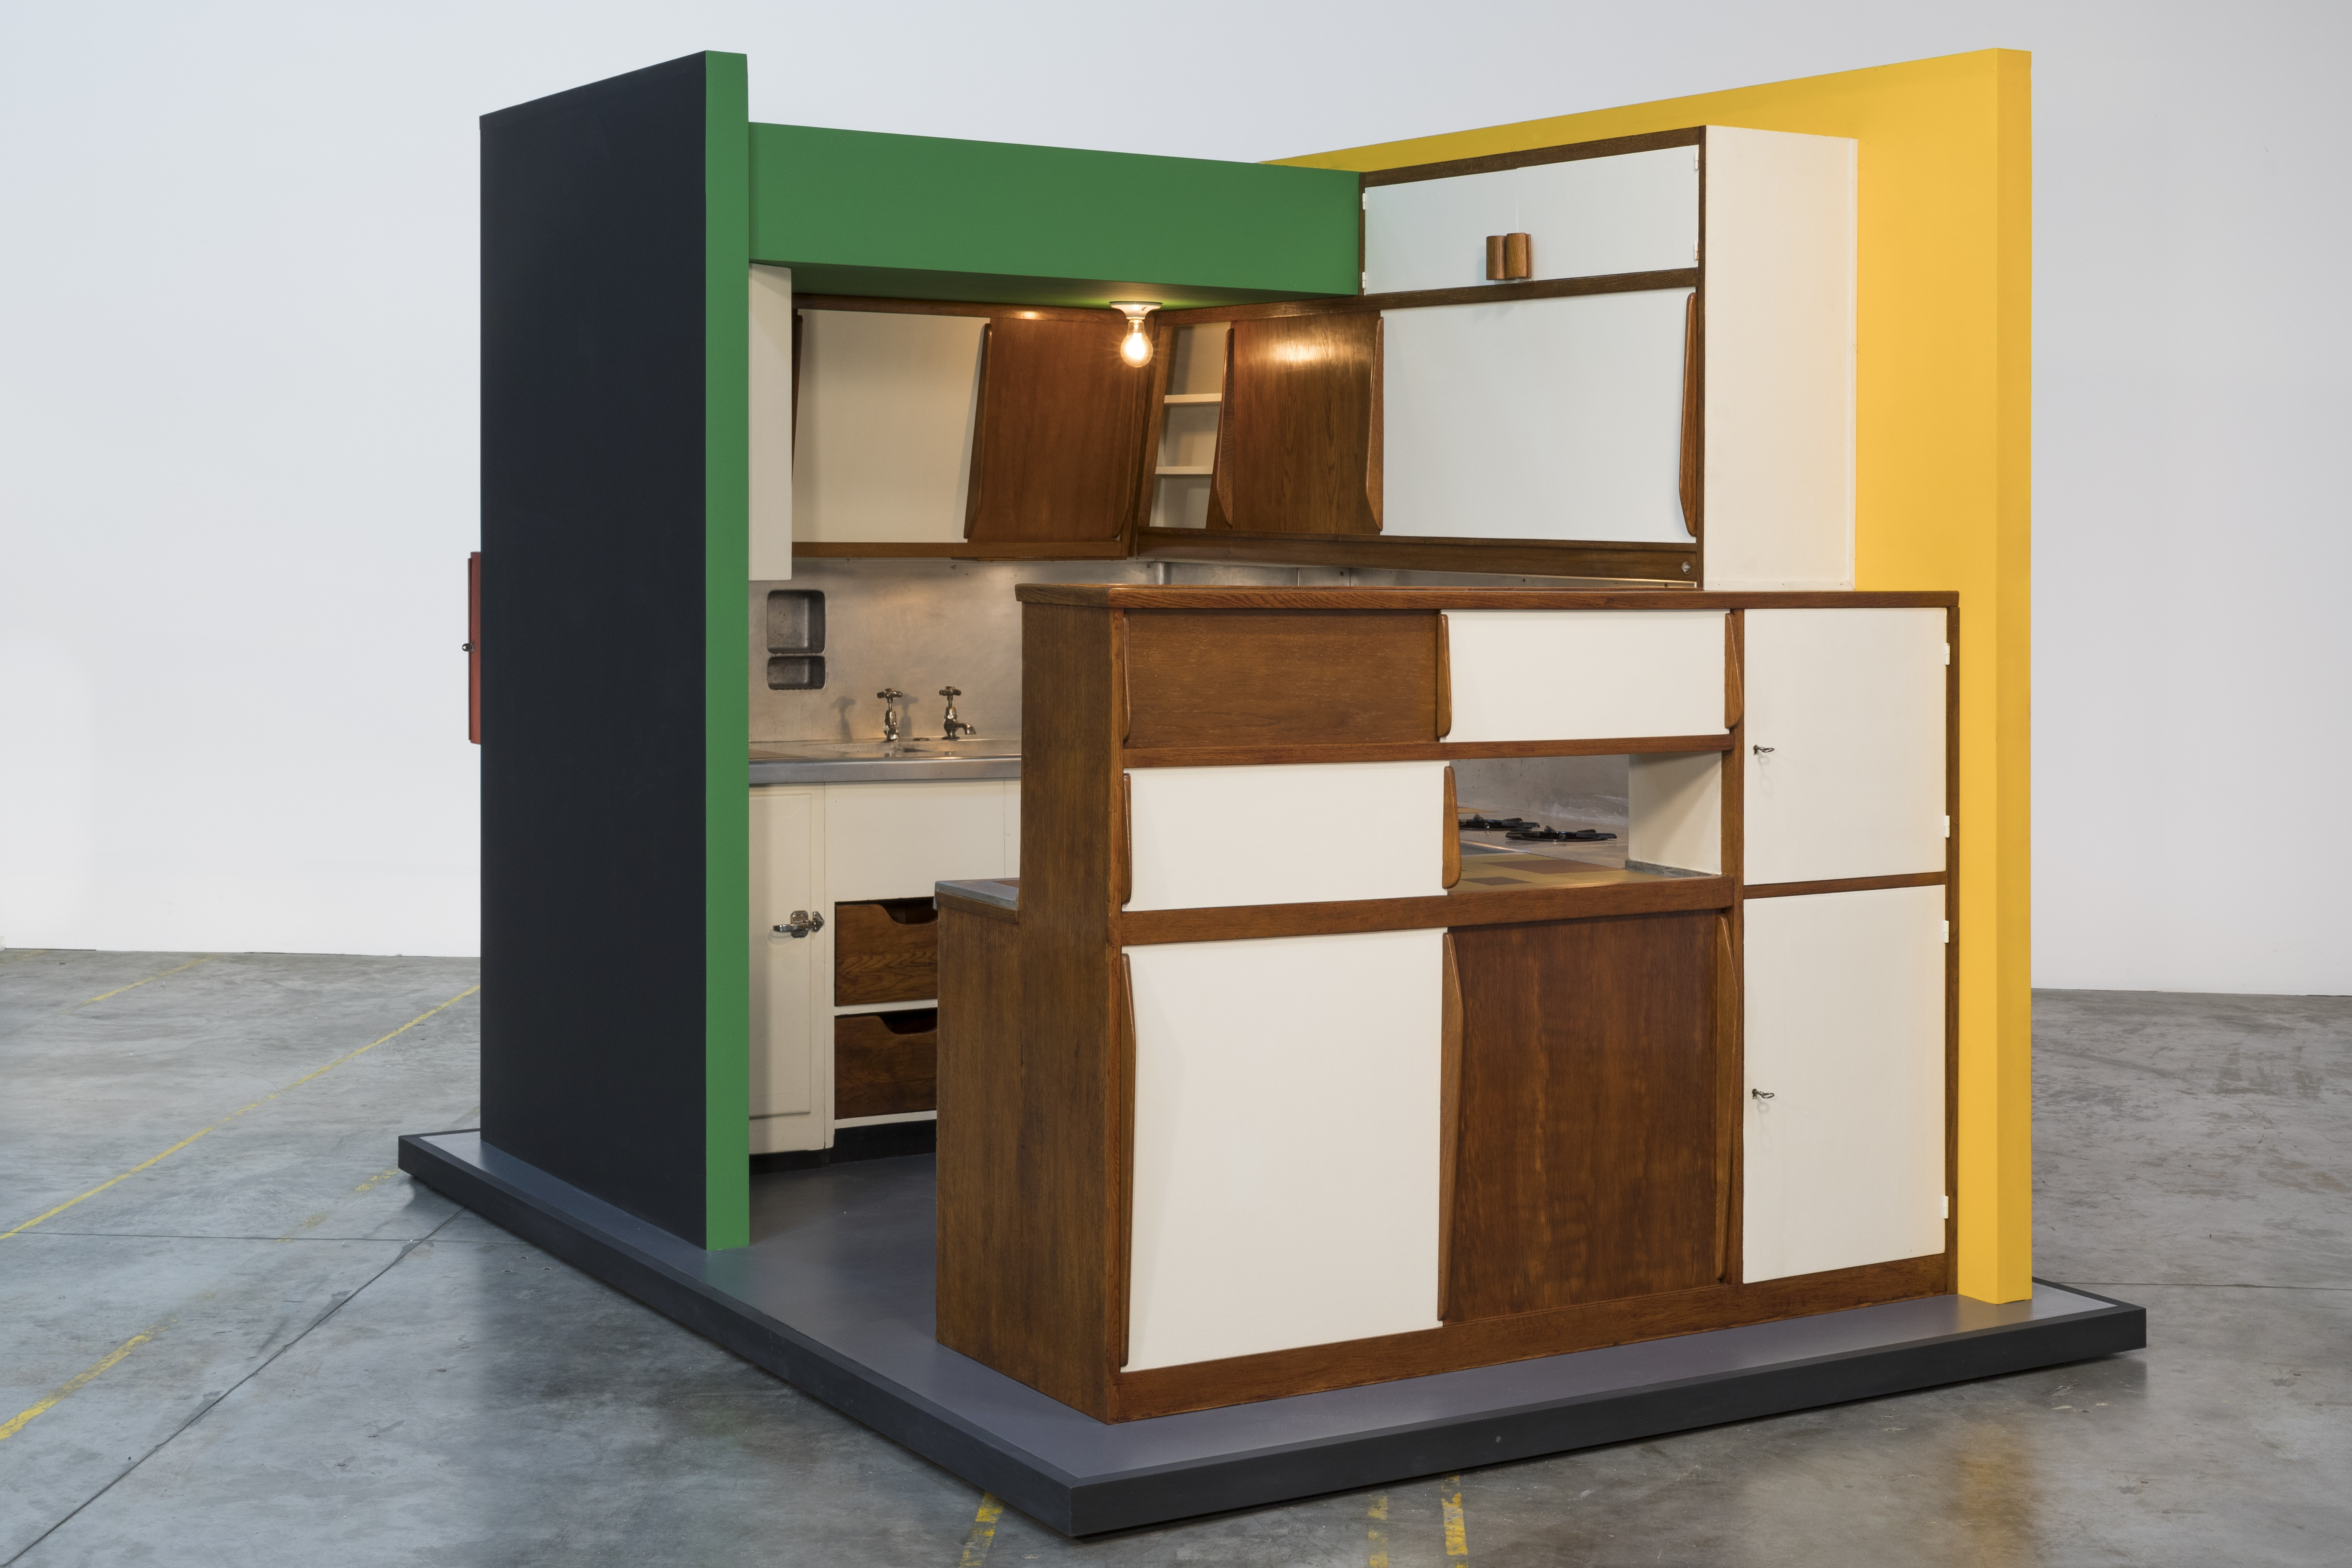 Charlotte Perriand, Le Corbusier, building architect, Kitchen for an apartment in Le Corbusier's Unité d'Habitation, designed 1948–50, made c. 1952, gift of the 2019 Collectors Committee, photo © Studio Shapiro